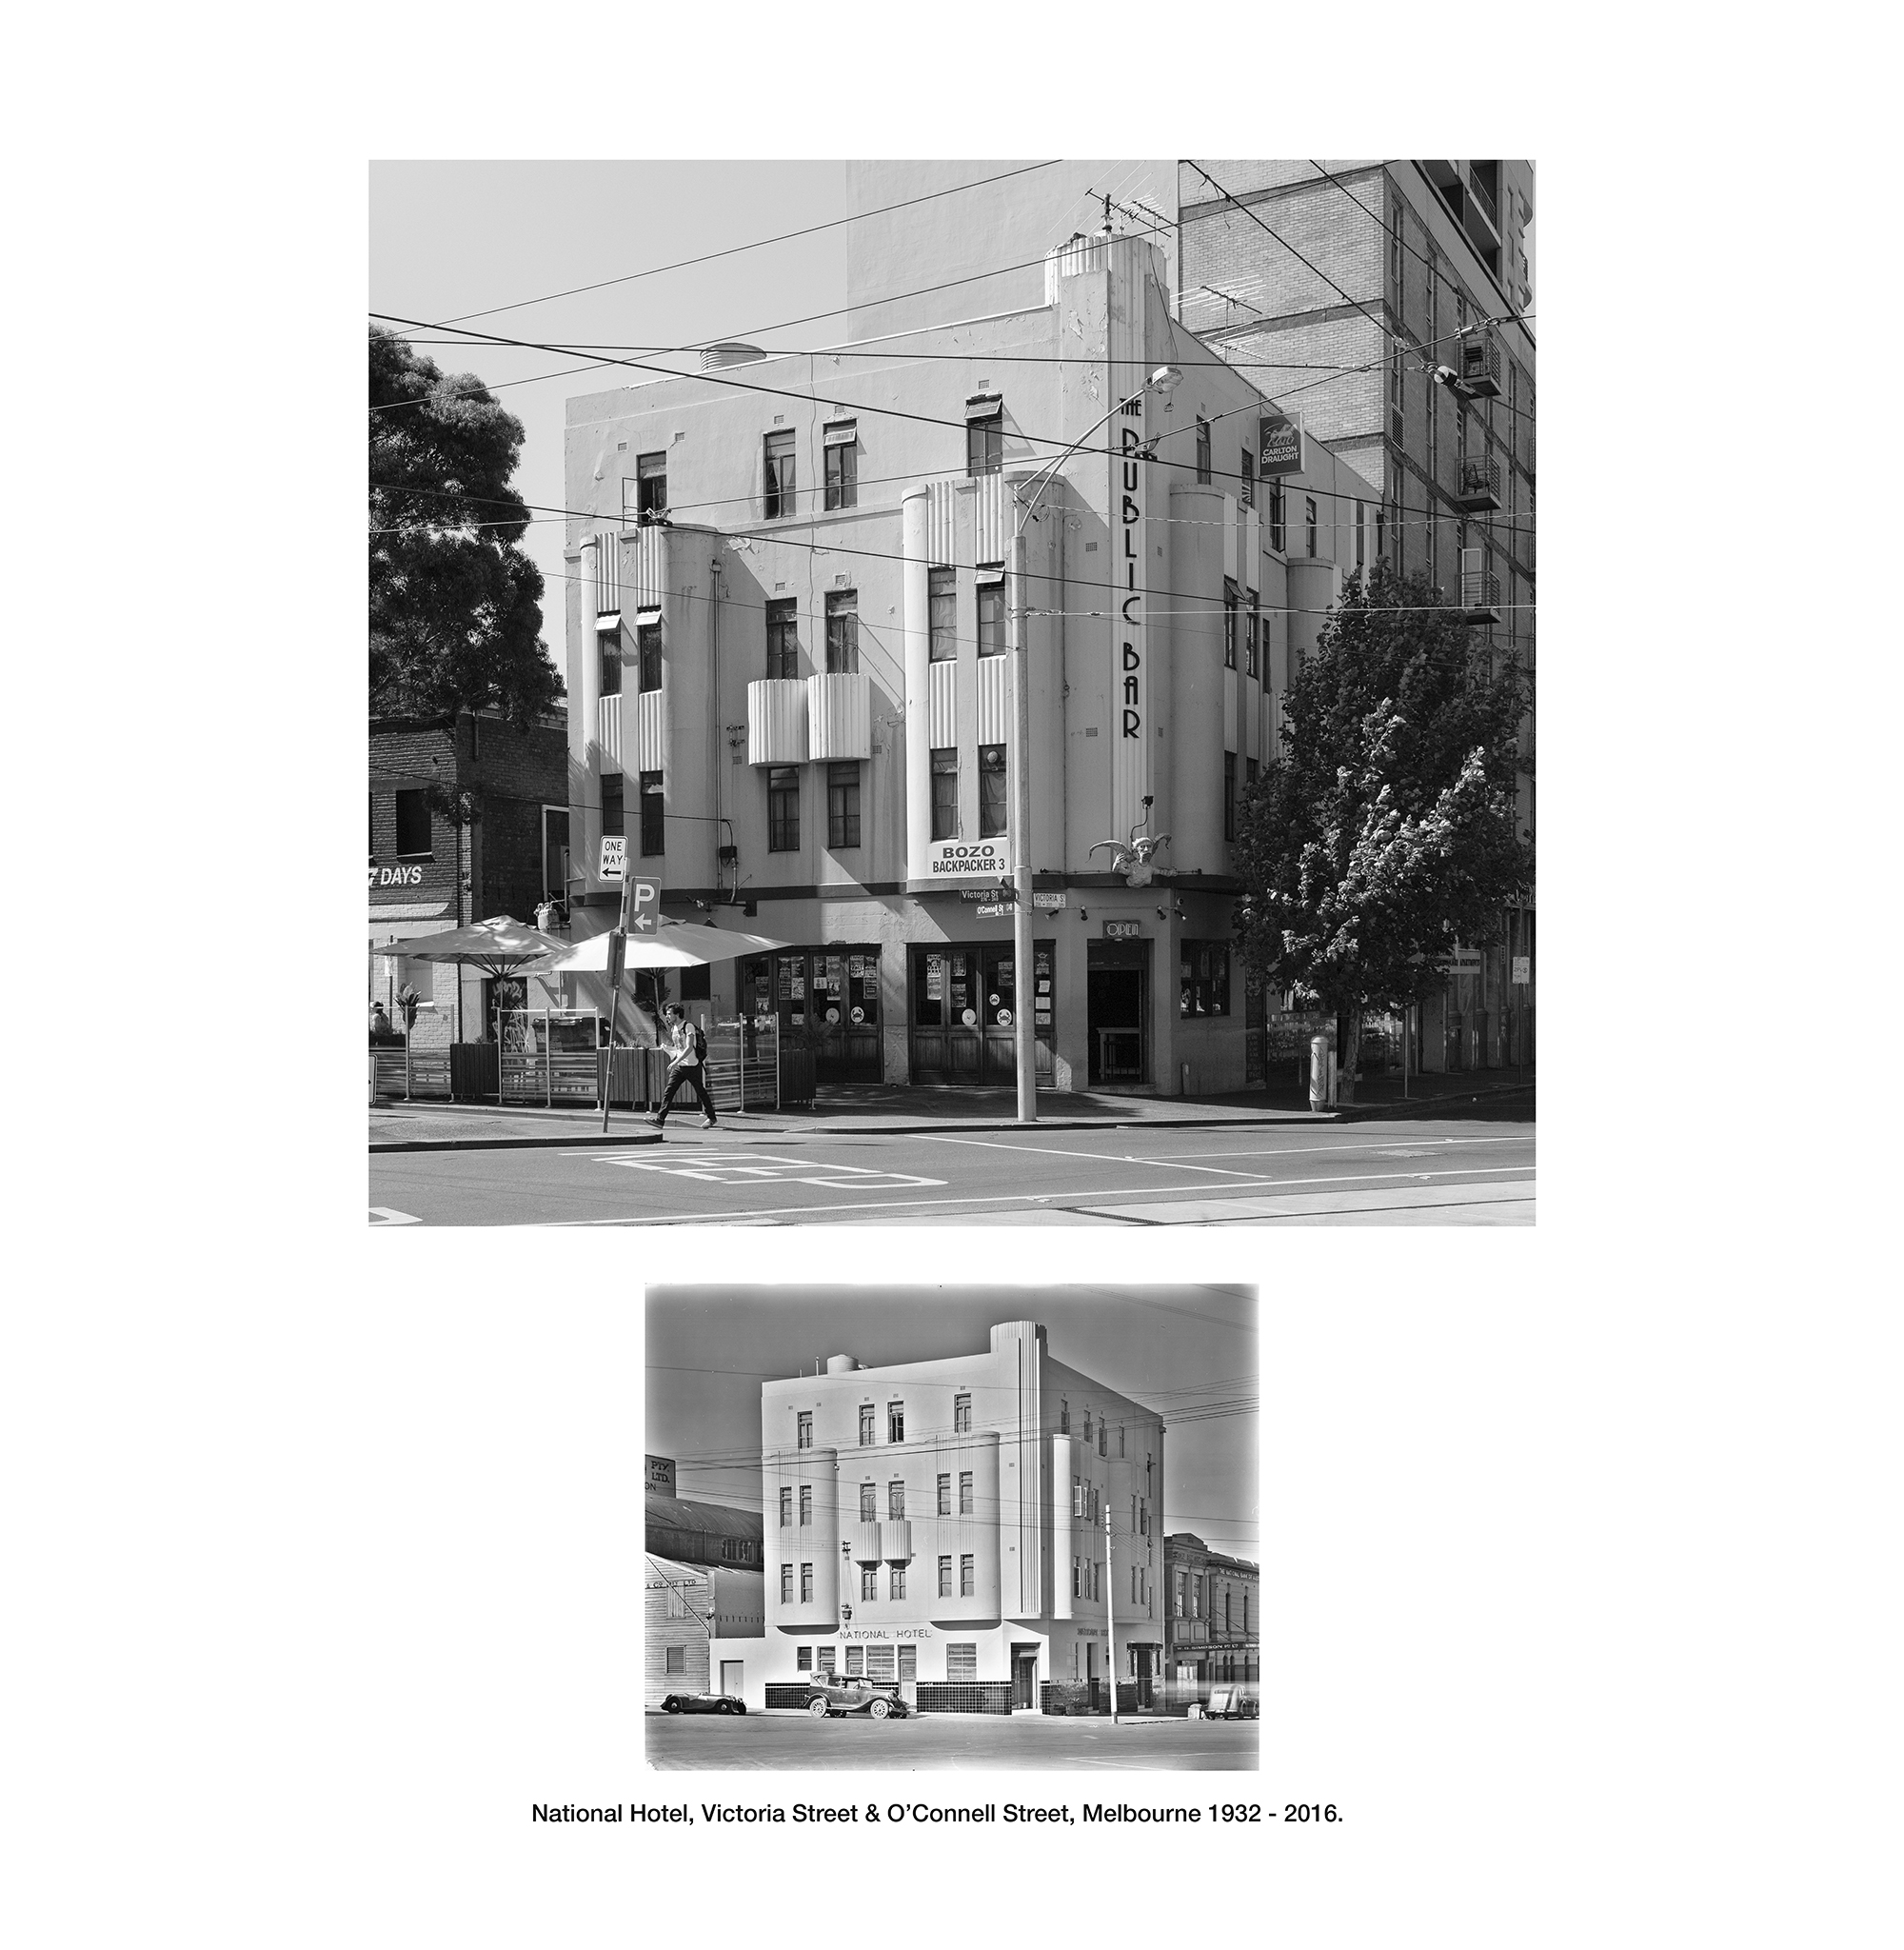 National Hotel, Victoria Street and O'Connell Street Melbourne 1932-2015